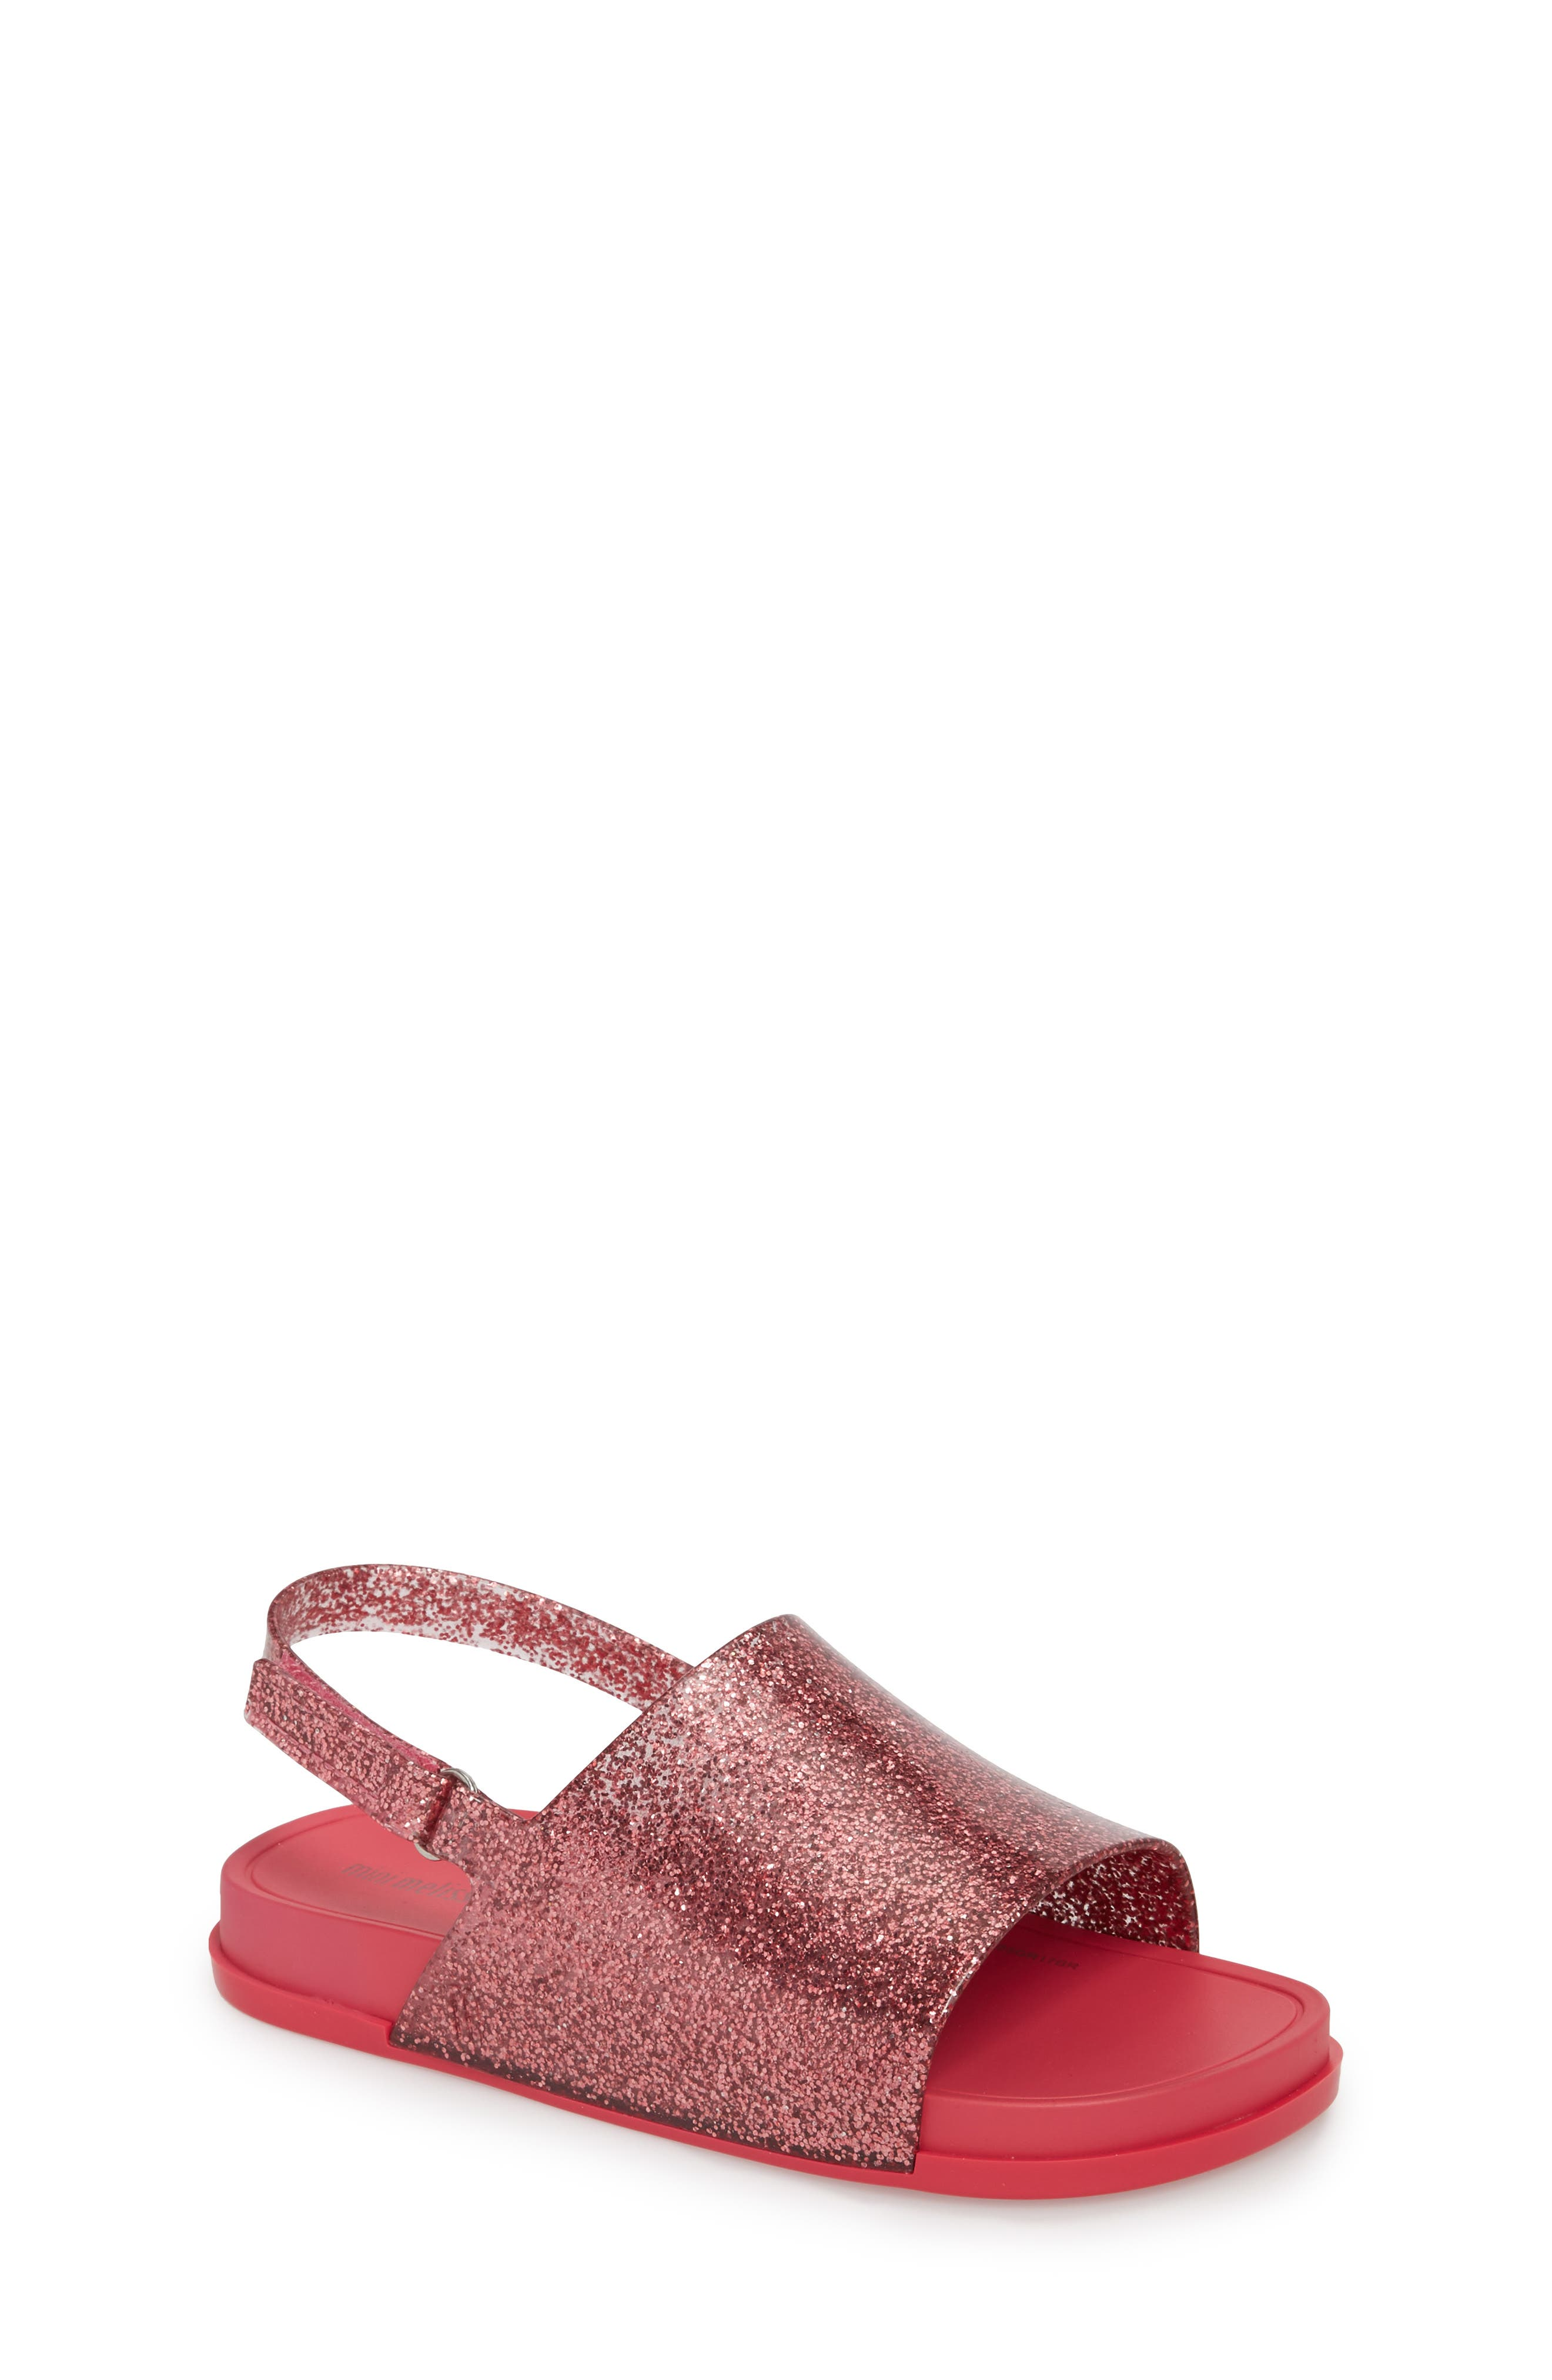 Mini Beach Sandal,                             Main thumbnail 1, color,                             Pink Glitter